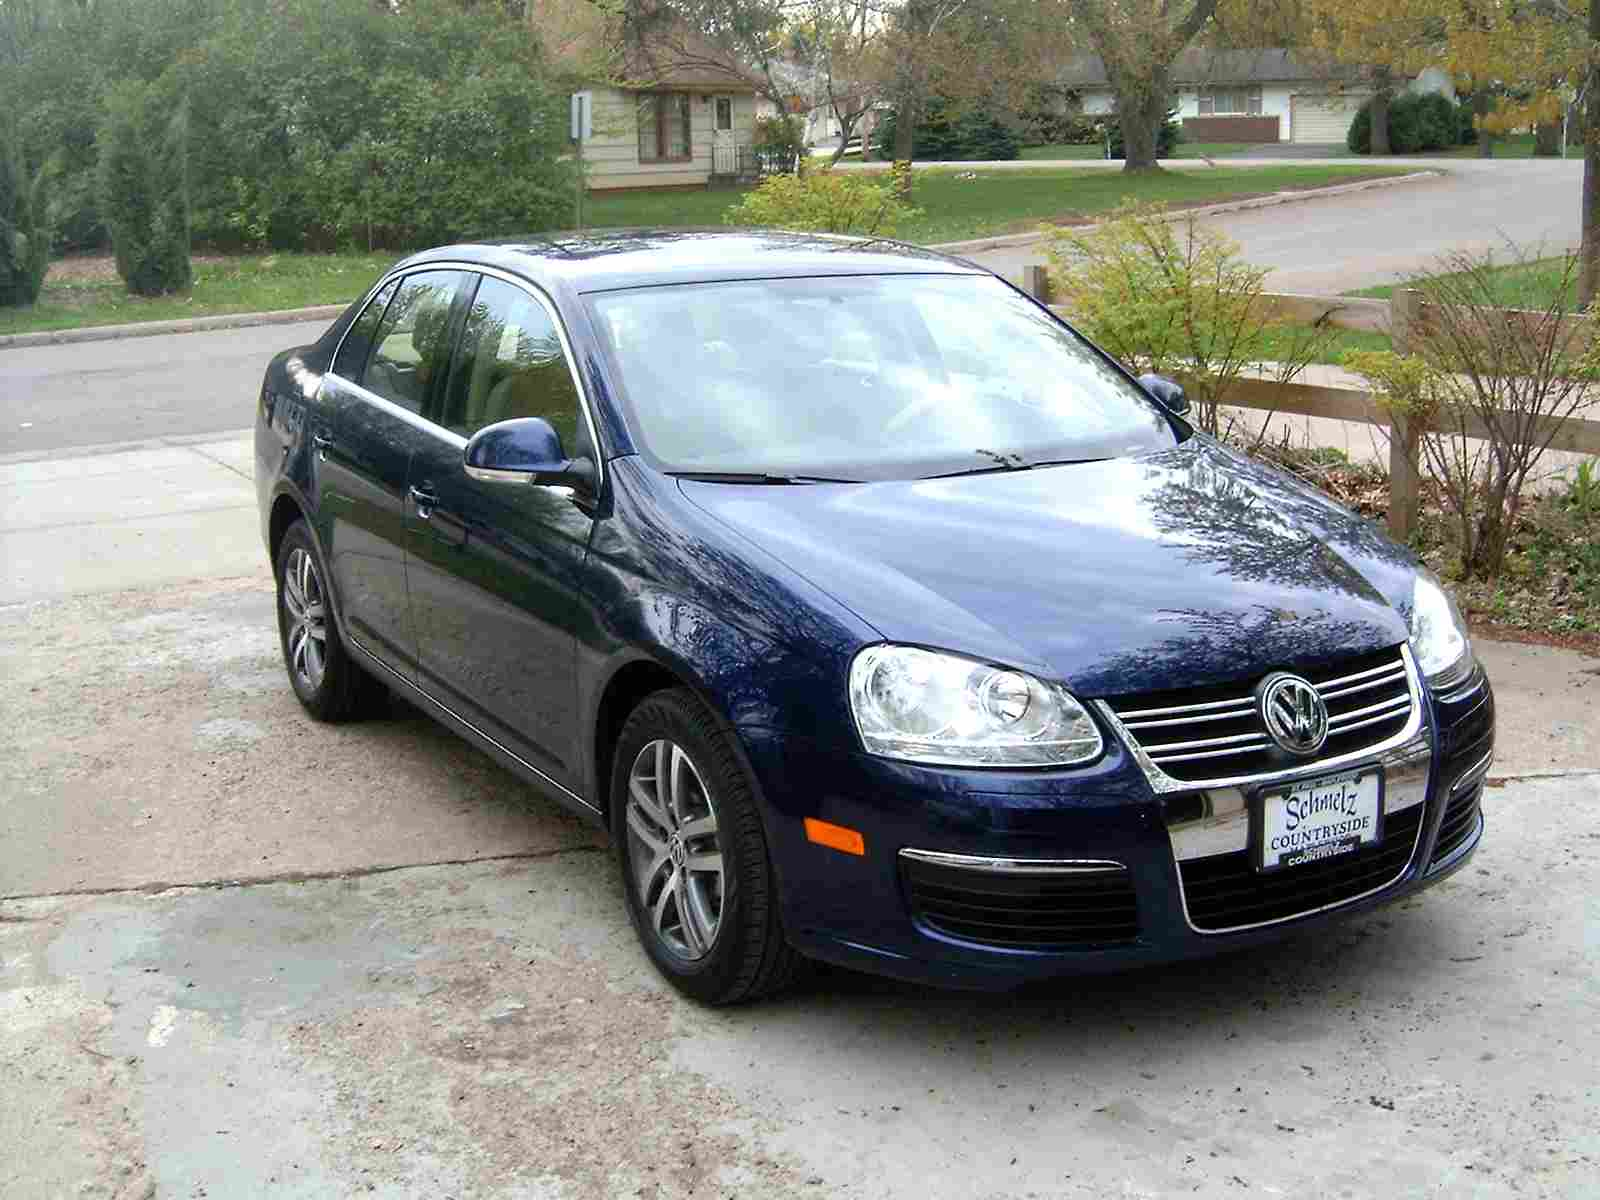 volkswagen jetta 2006 blue wallpapers driverlayer search engine. Black Bedroom Furniture Sets. Home Design Ideas